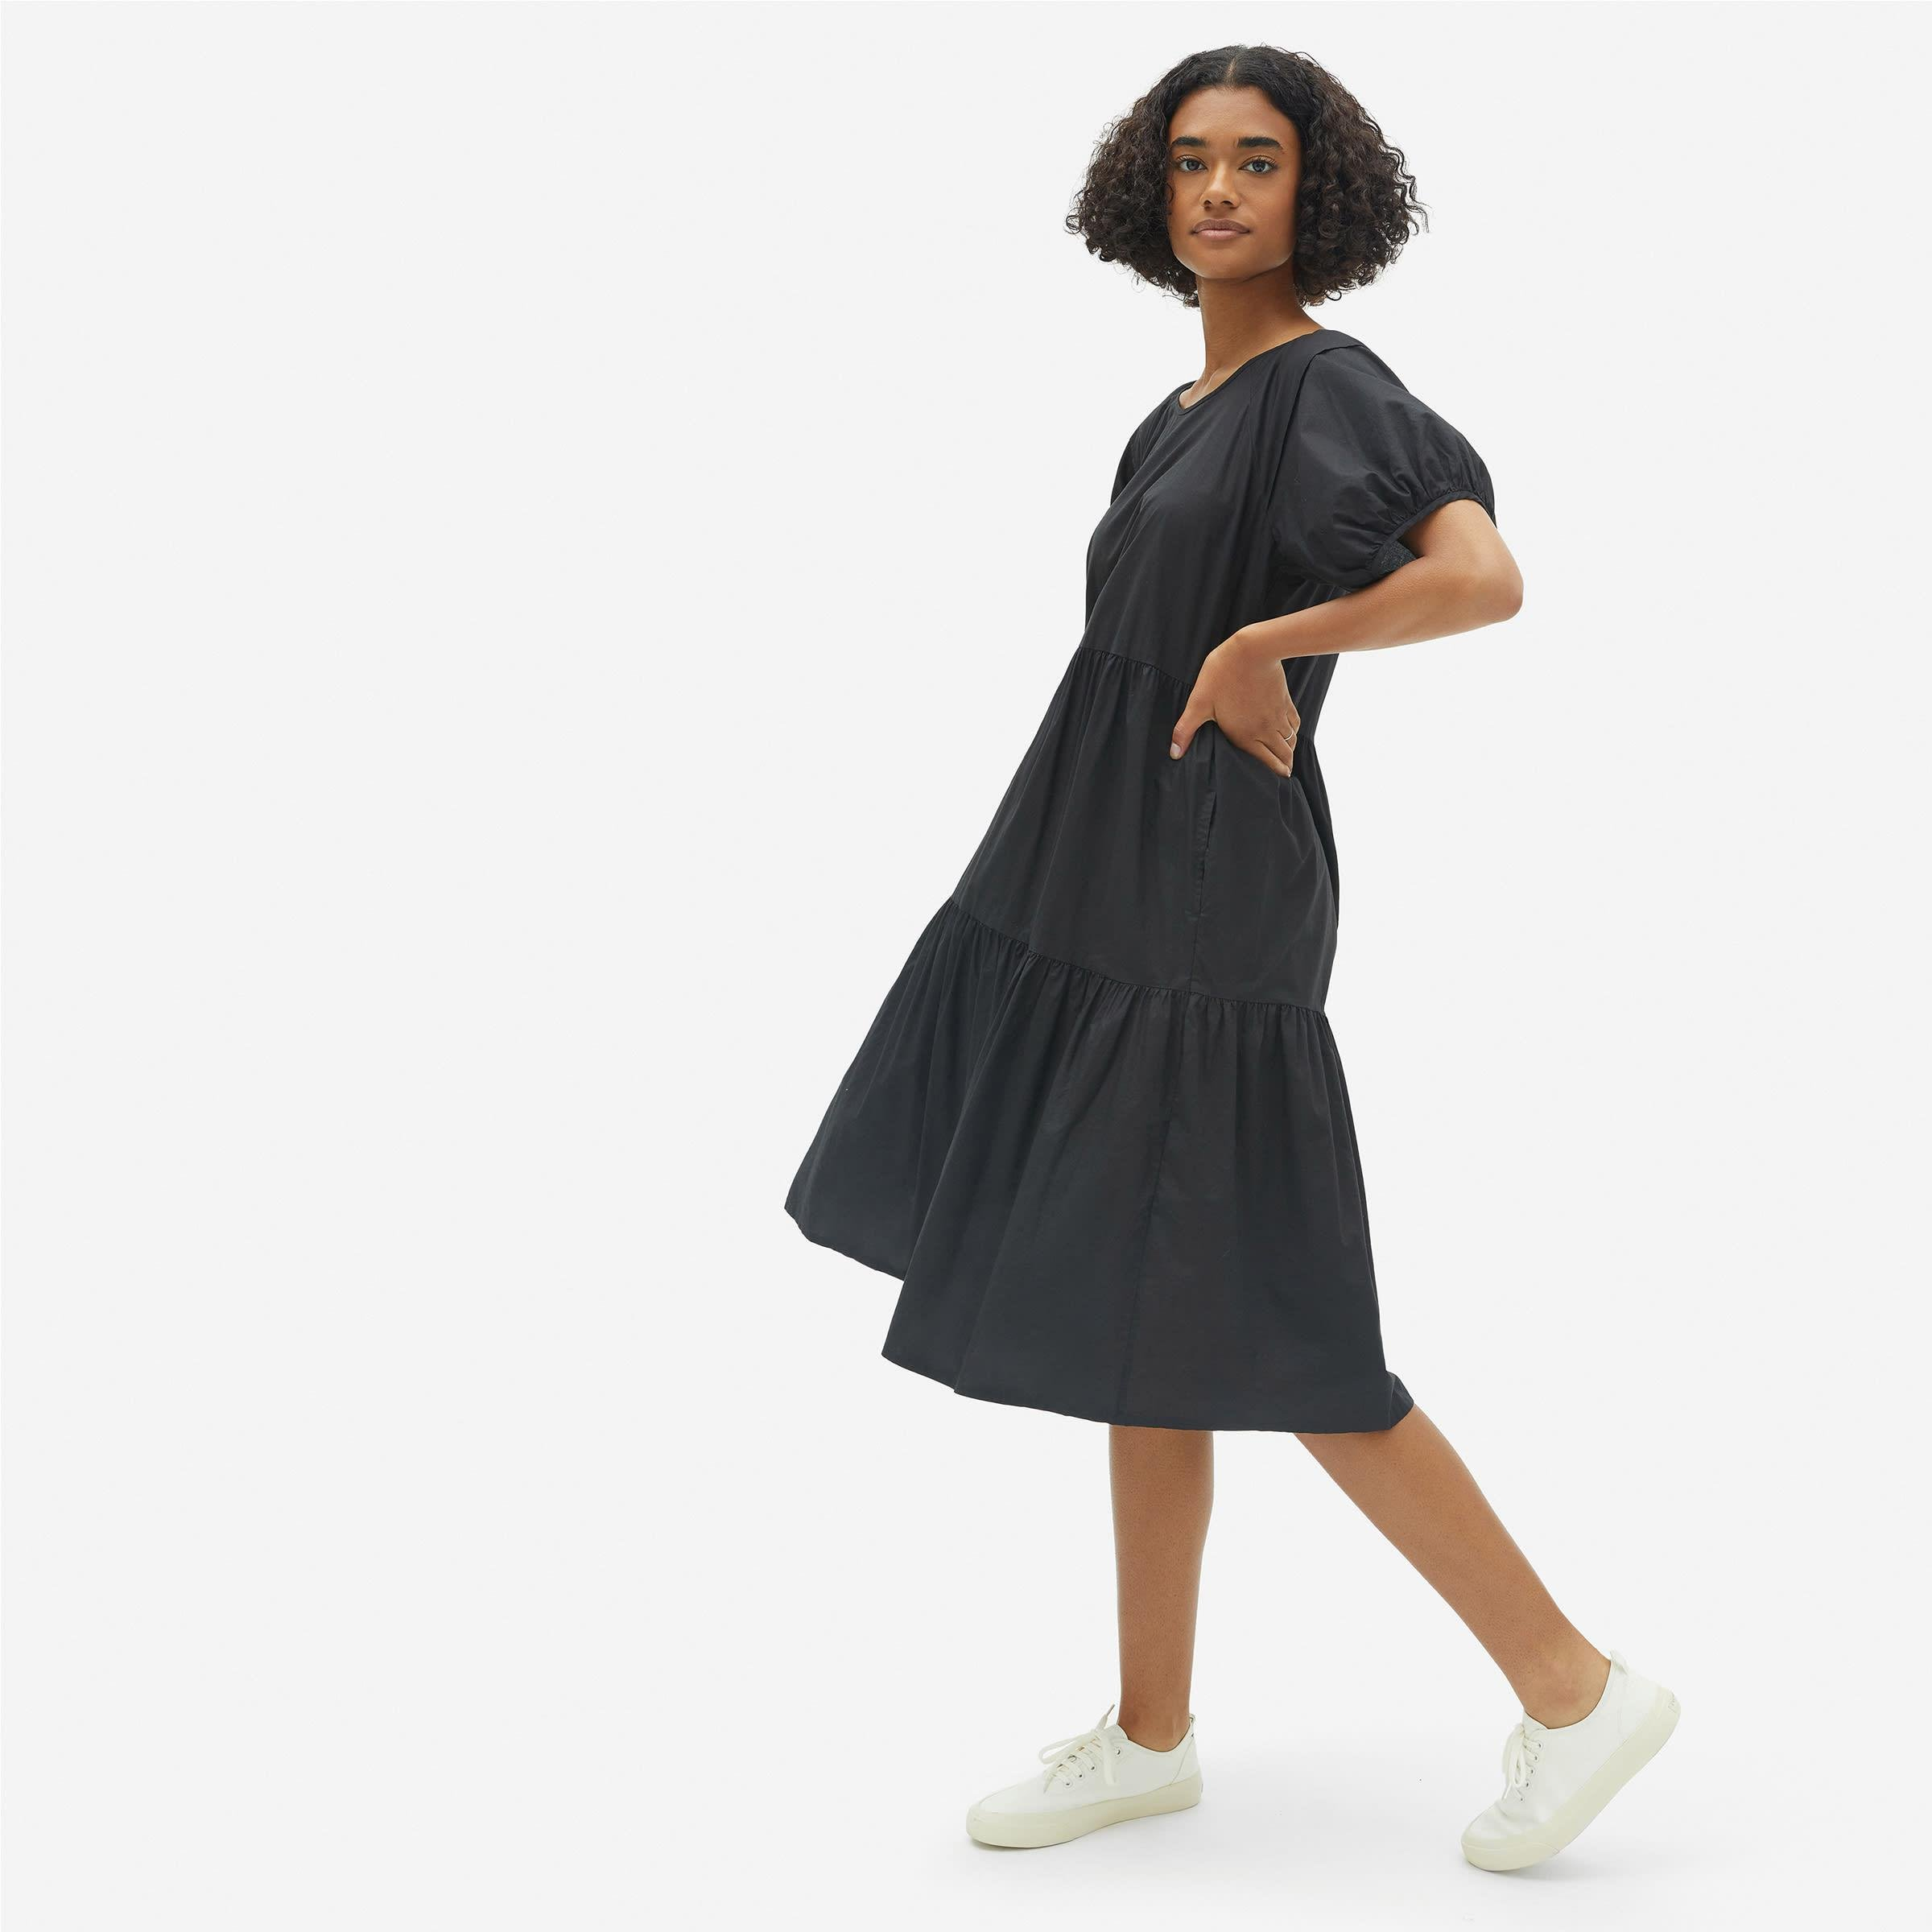 The Tiered Cotton Dress